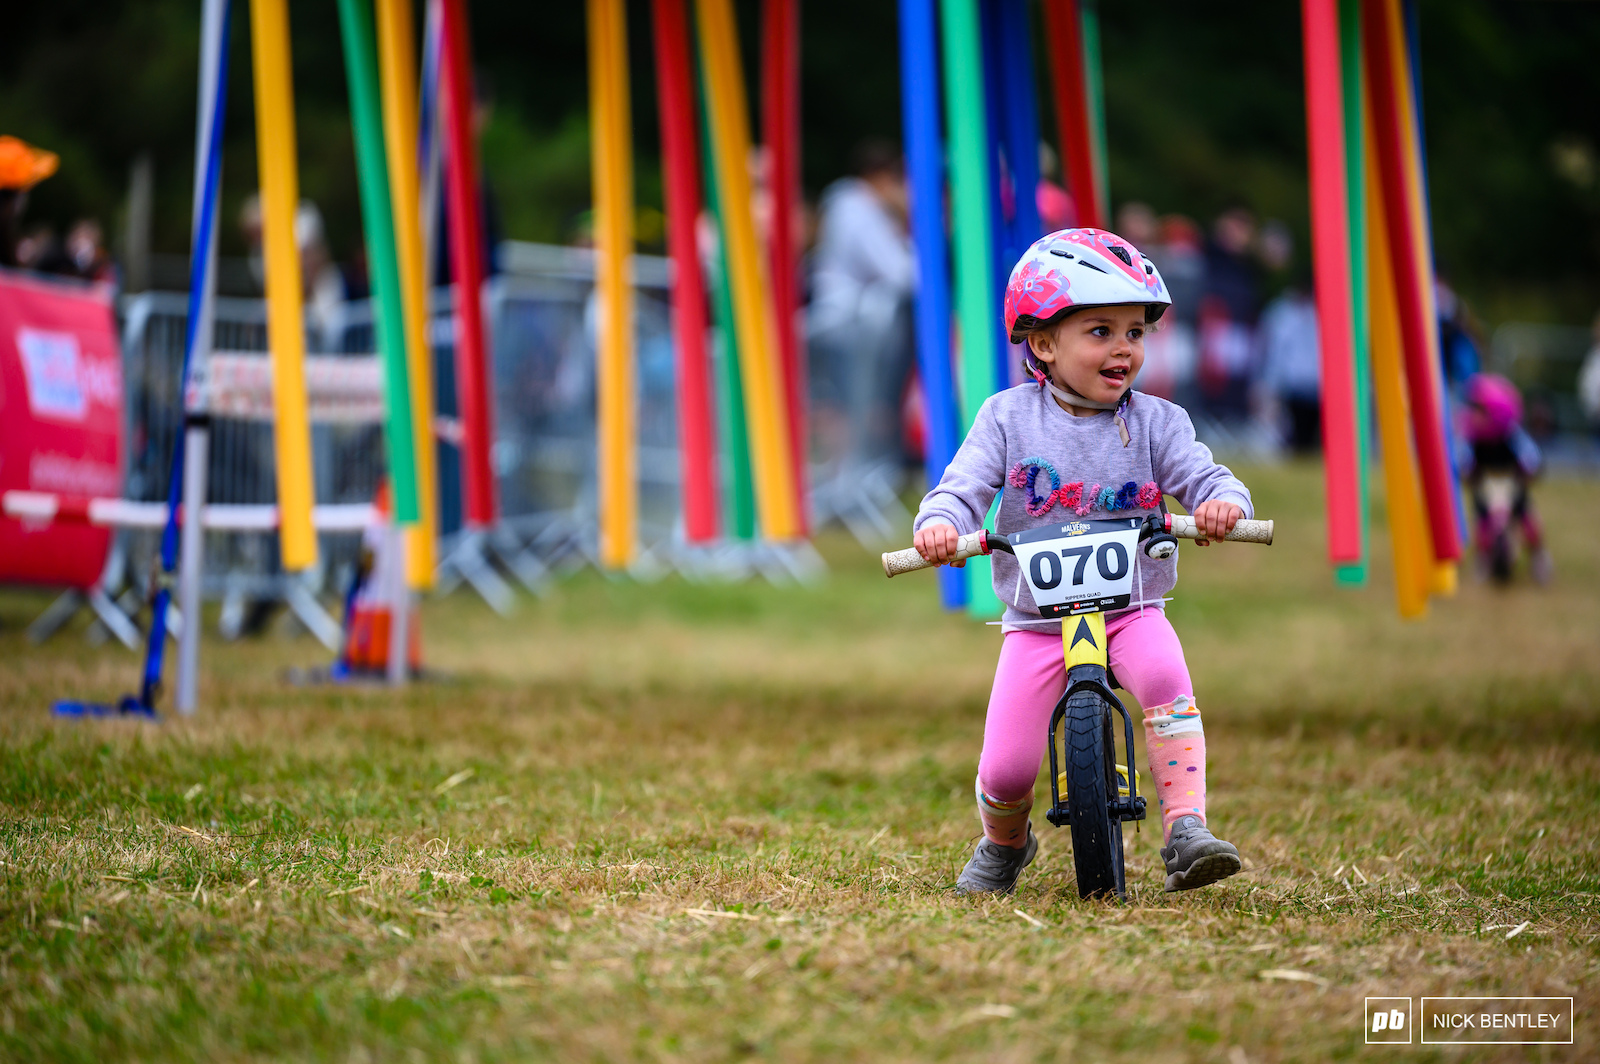 After surviving the Noodle Forest this rider was focussed on the final twist and turns to the finish line